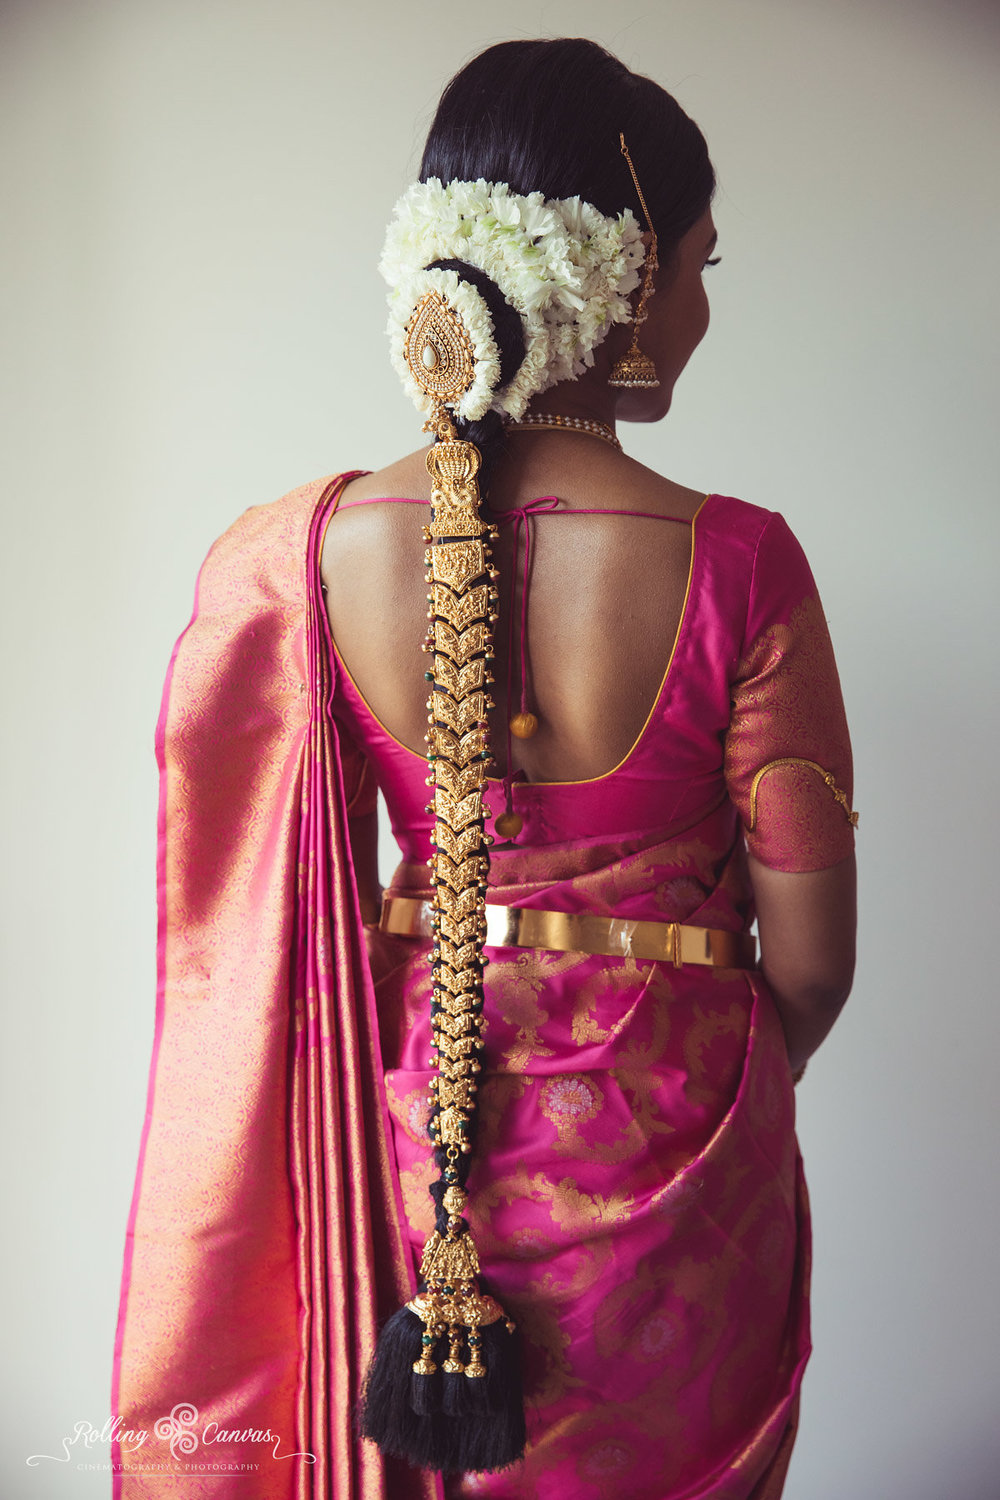 Wedding_Photography_Sydney_Rolling_Canvas_Presentation_Hindu_Sri_Lankan_Bride_Sari_Sydney-57021.jpg